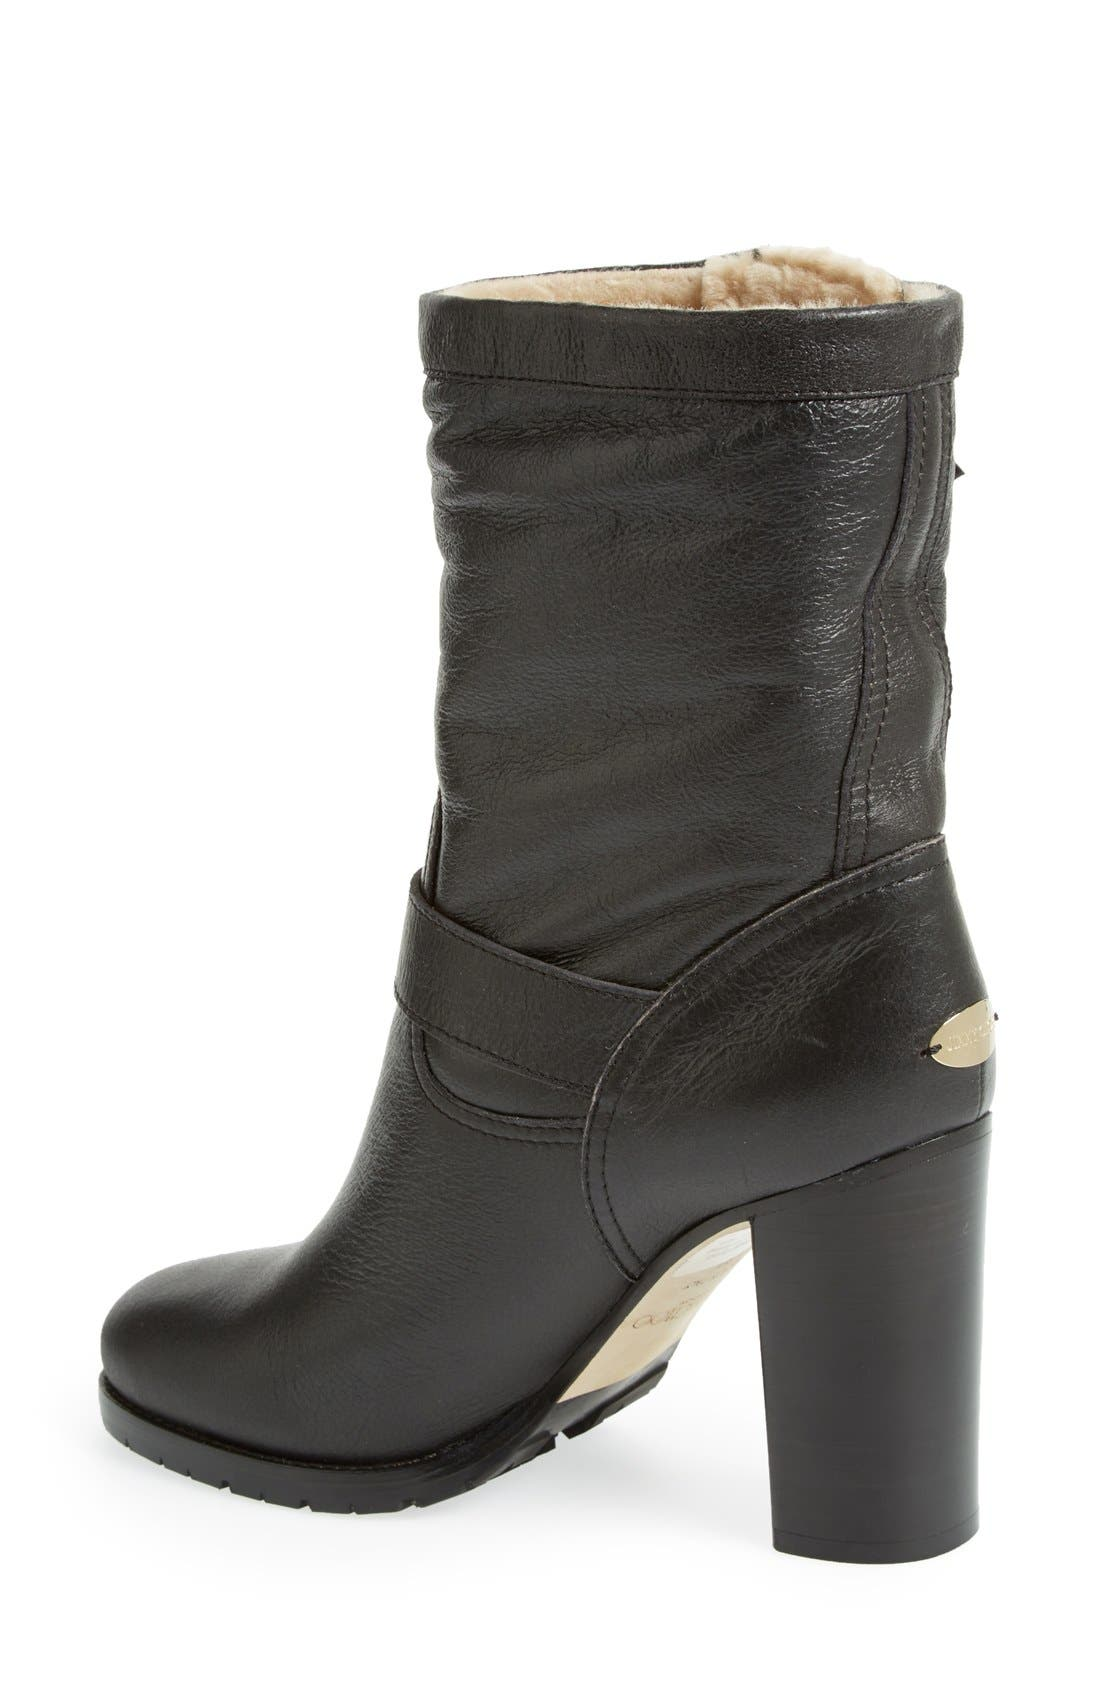 Alternate Image 2  - Jimmy Choo 'Dart' Leather & Genuine Shearling Mid Calf Moto Boot (Women)